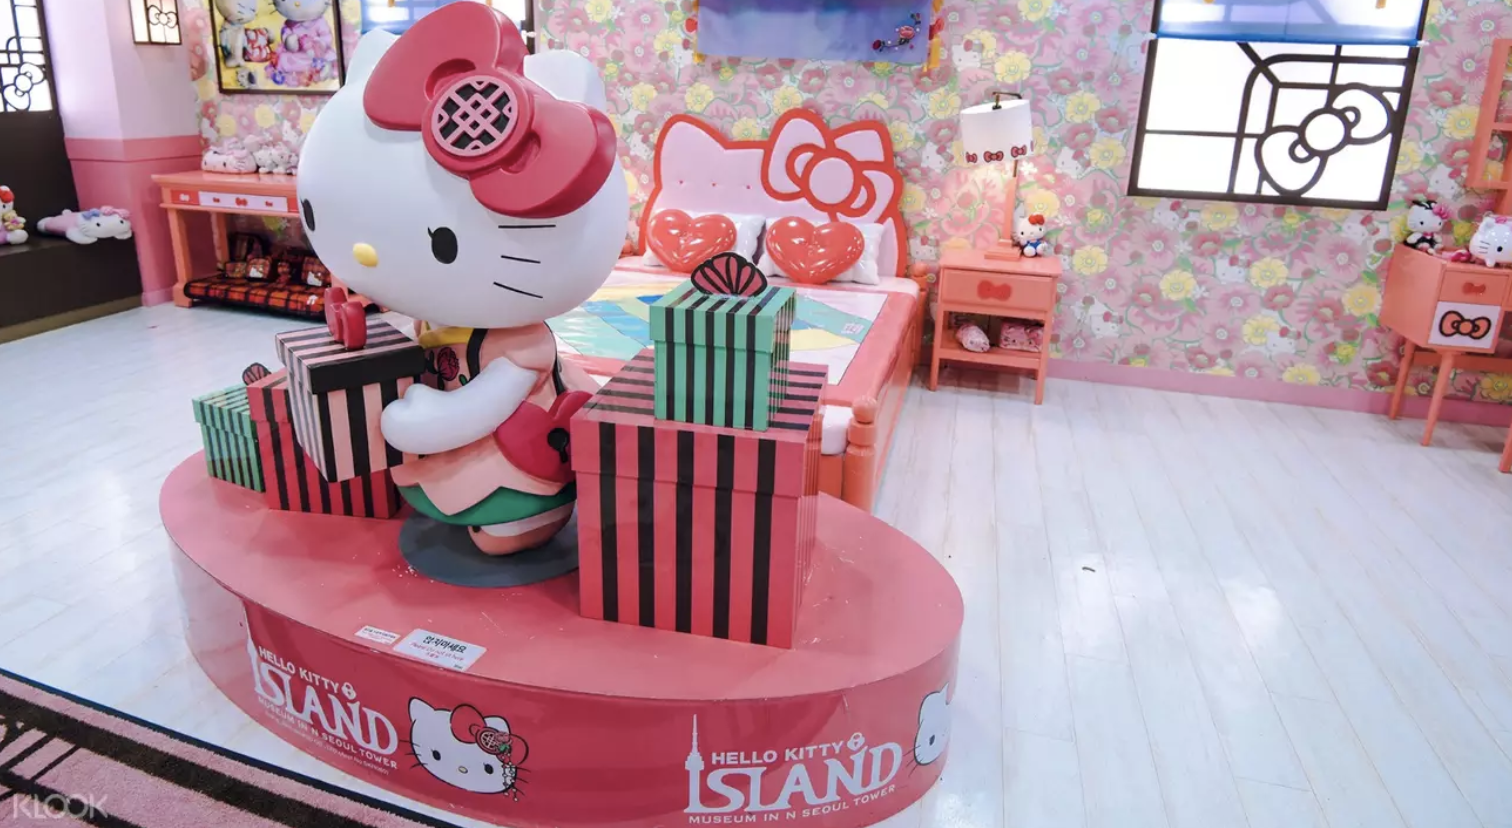 Hello Kitty Island museum at N Seoul Tower. Screengrab from  Klook